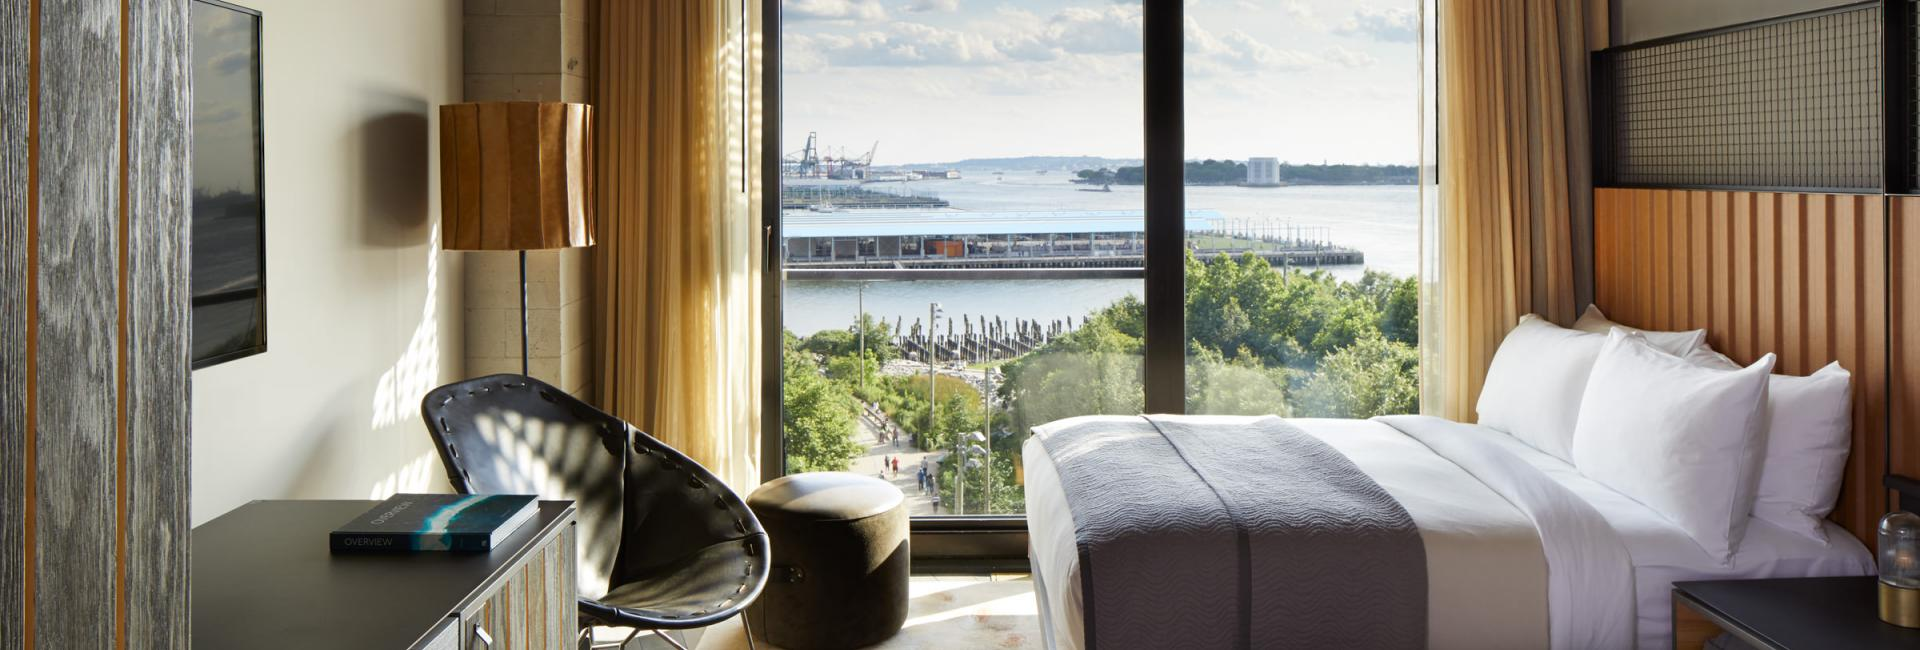 Suite at 1 Hotel Brooklyn Bridge with a view overlooking Pier 1 and the East River.